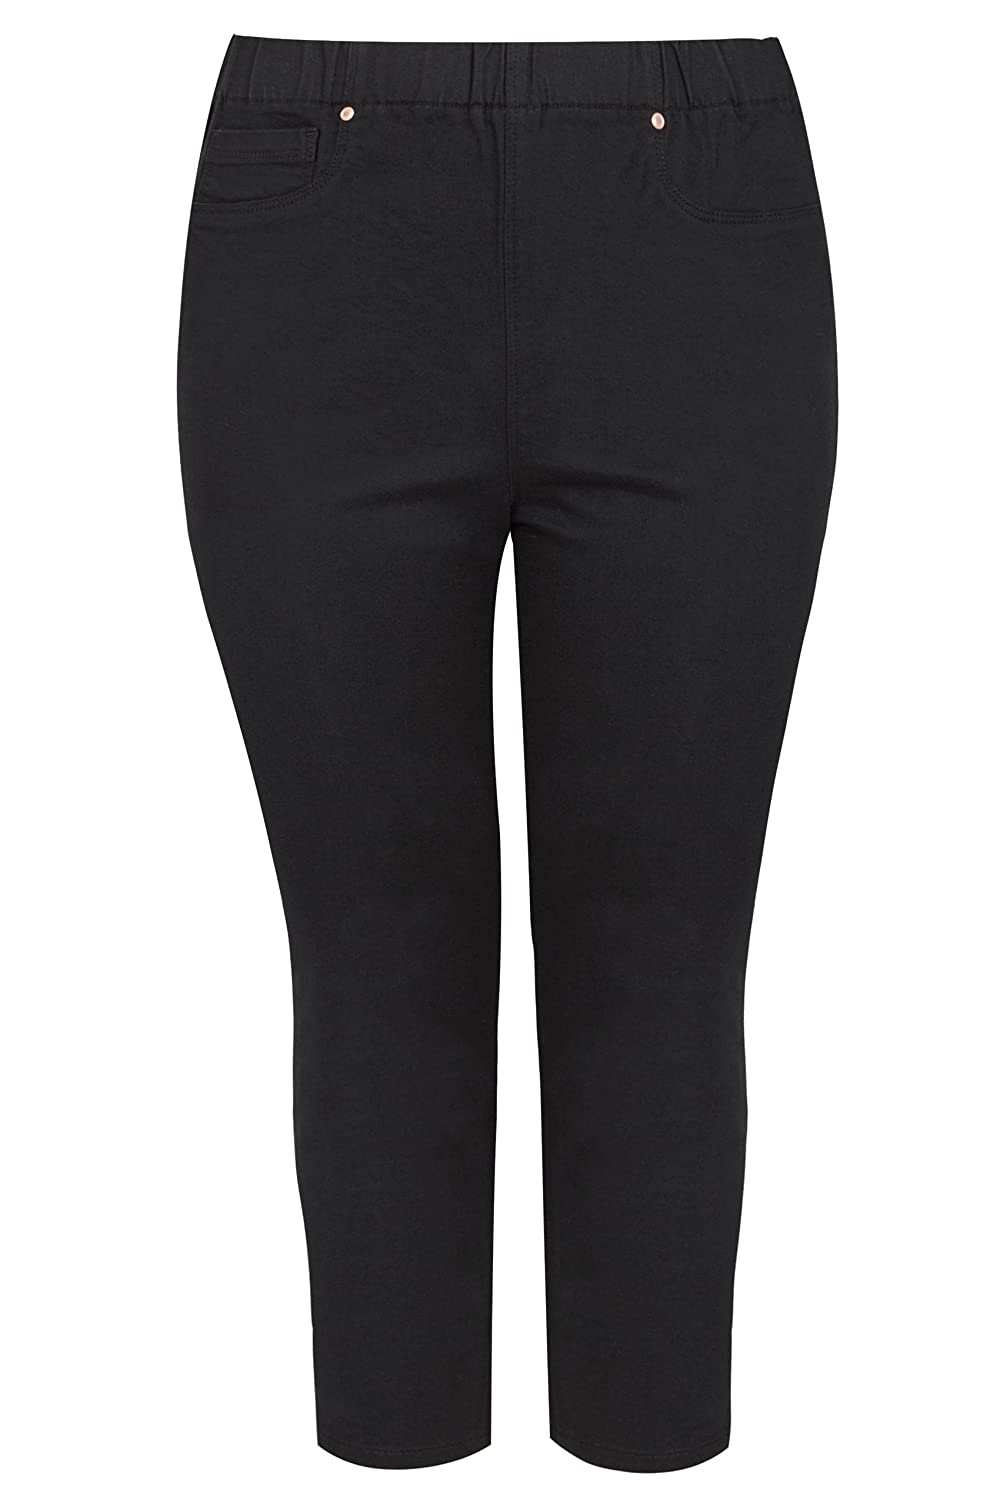 Yours Clothing Womens Plus Size Bleach Cropped Jenny Jeggings